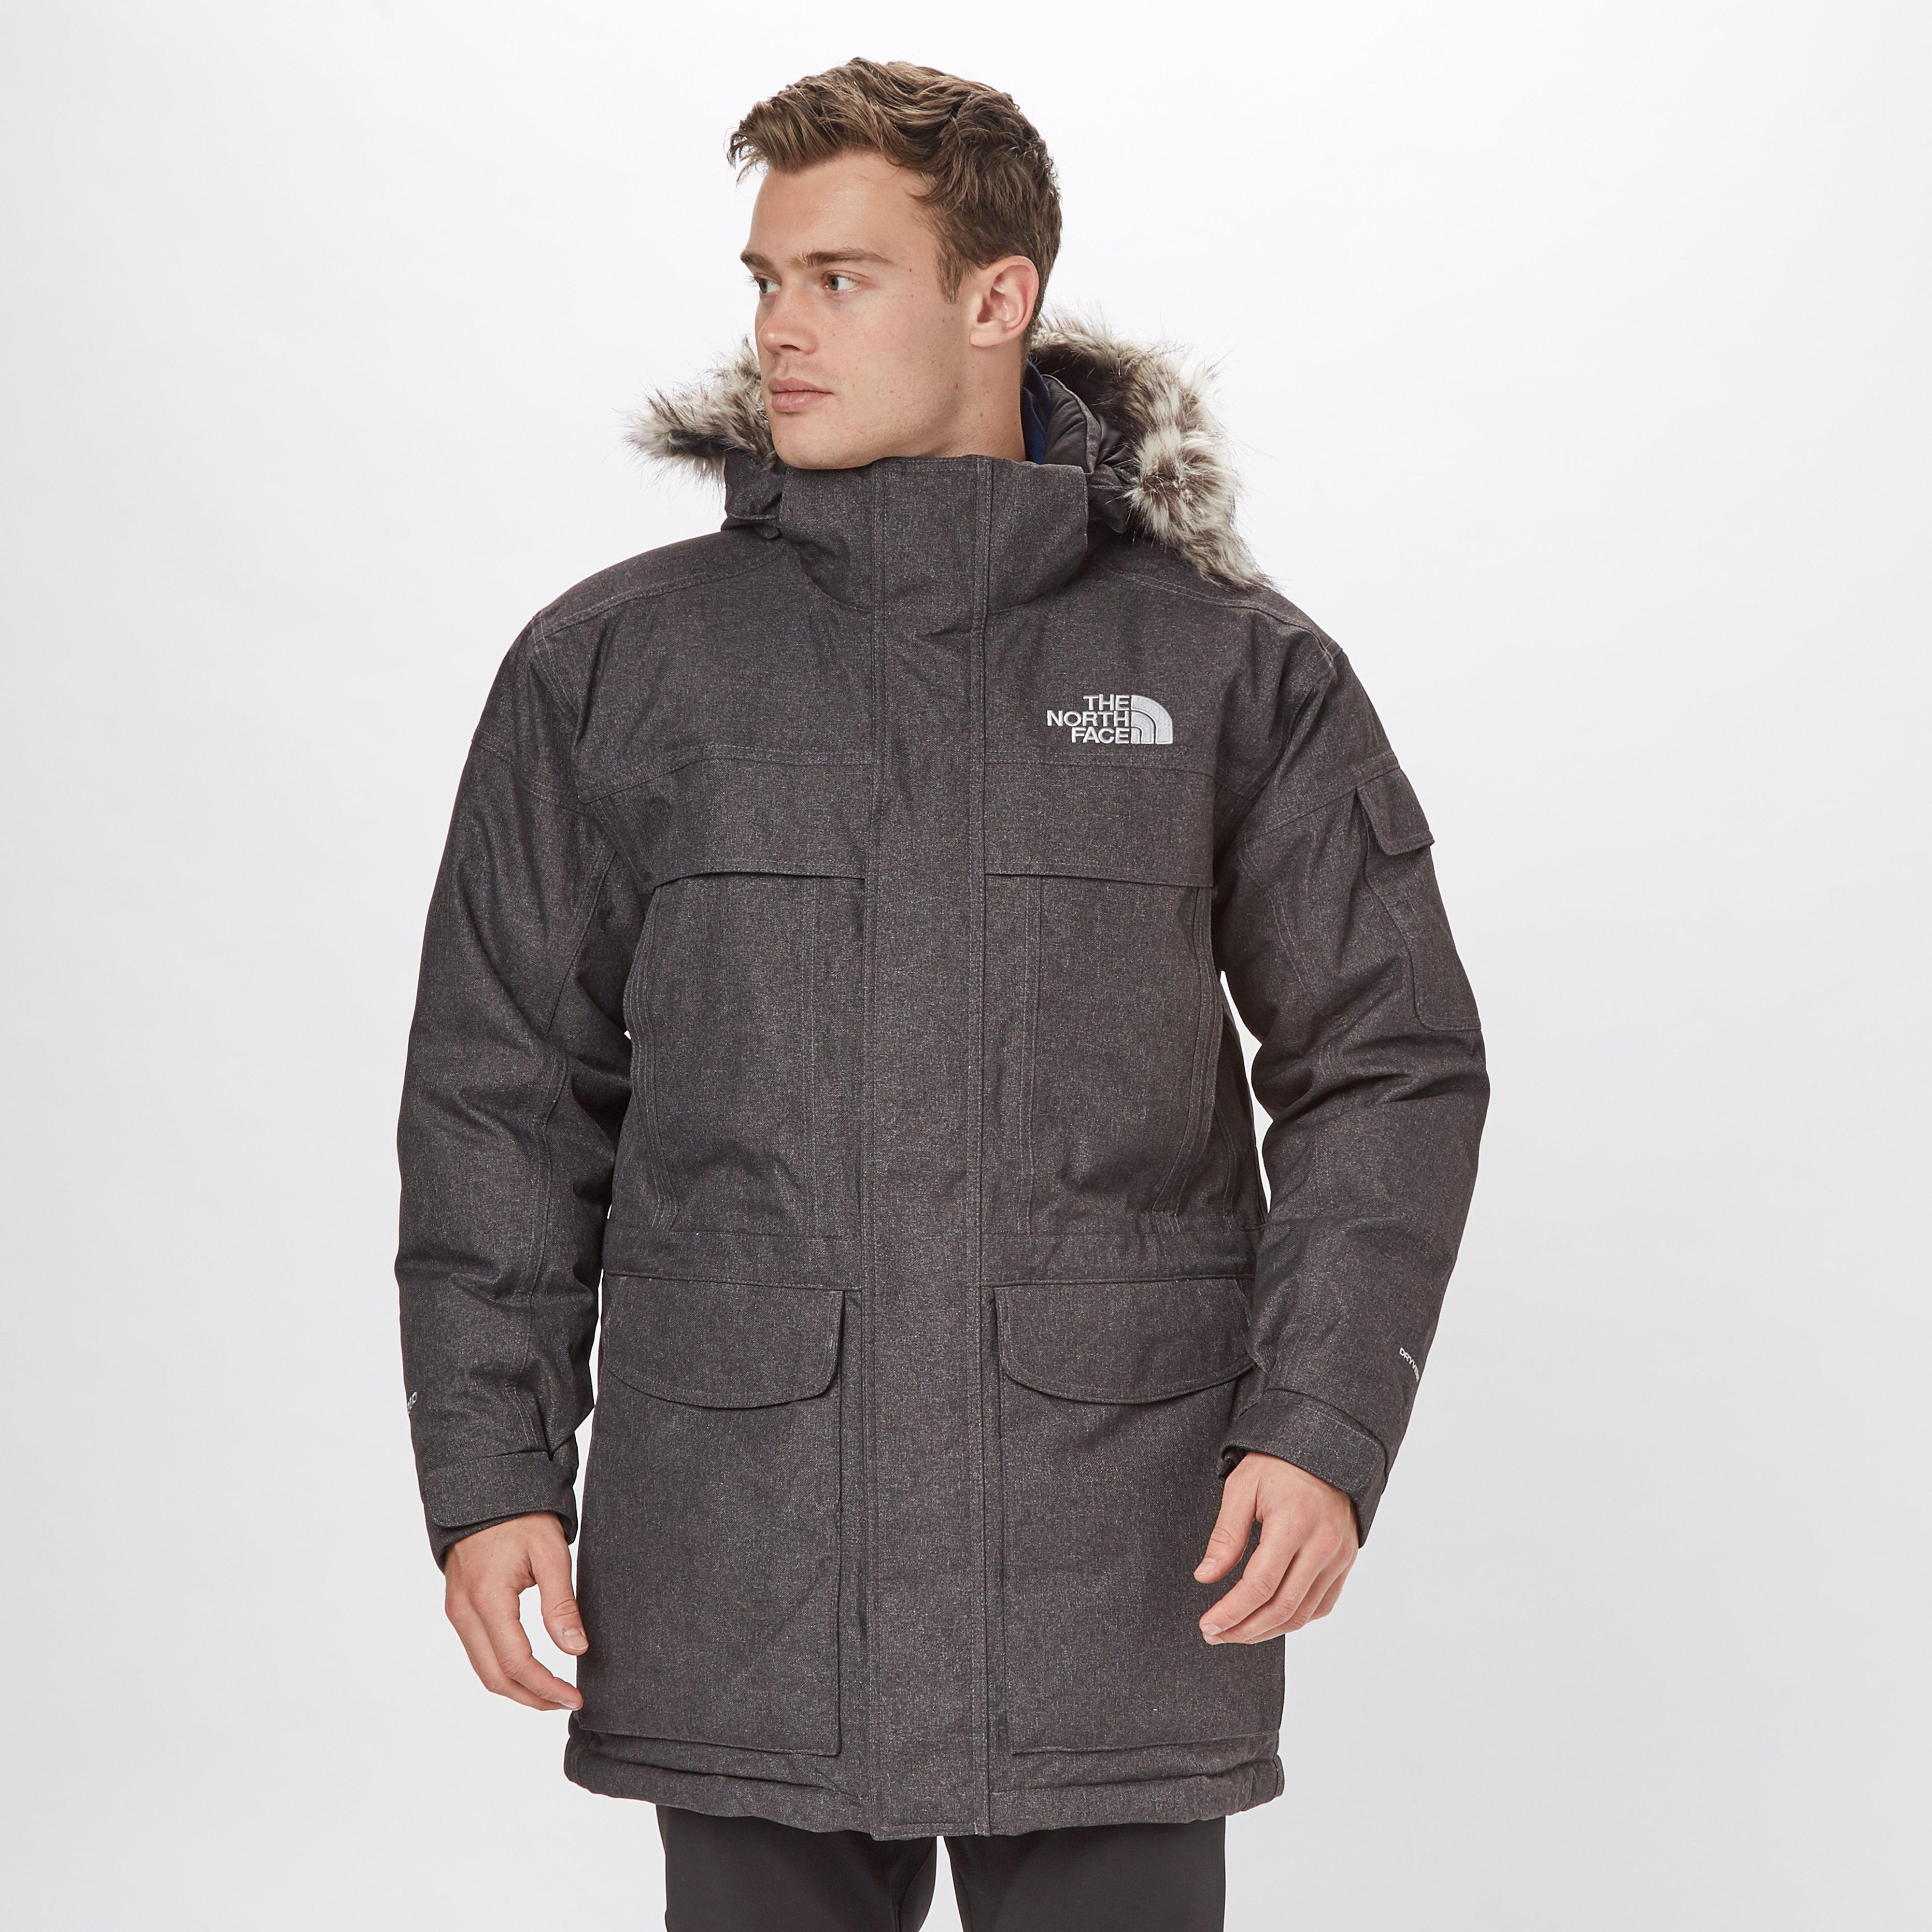 the north face mcmurdo 2 parka men s jacket compare compare outdoor jacket prices. Black Bedroom Furniture Sets. Home Design Ideas